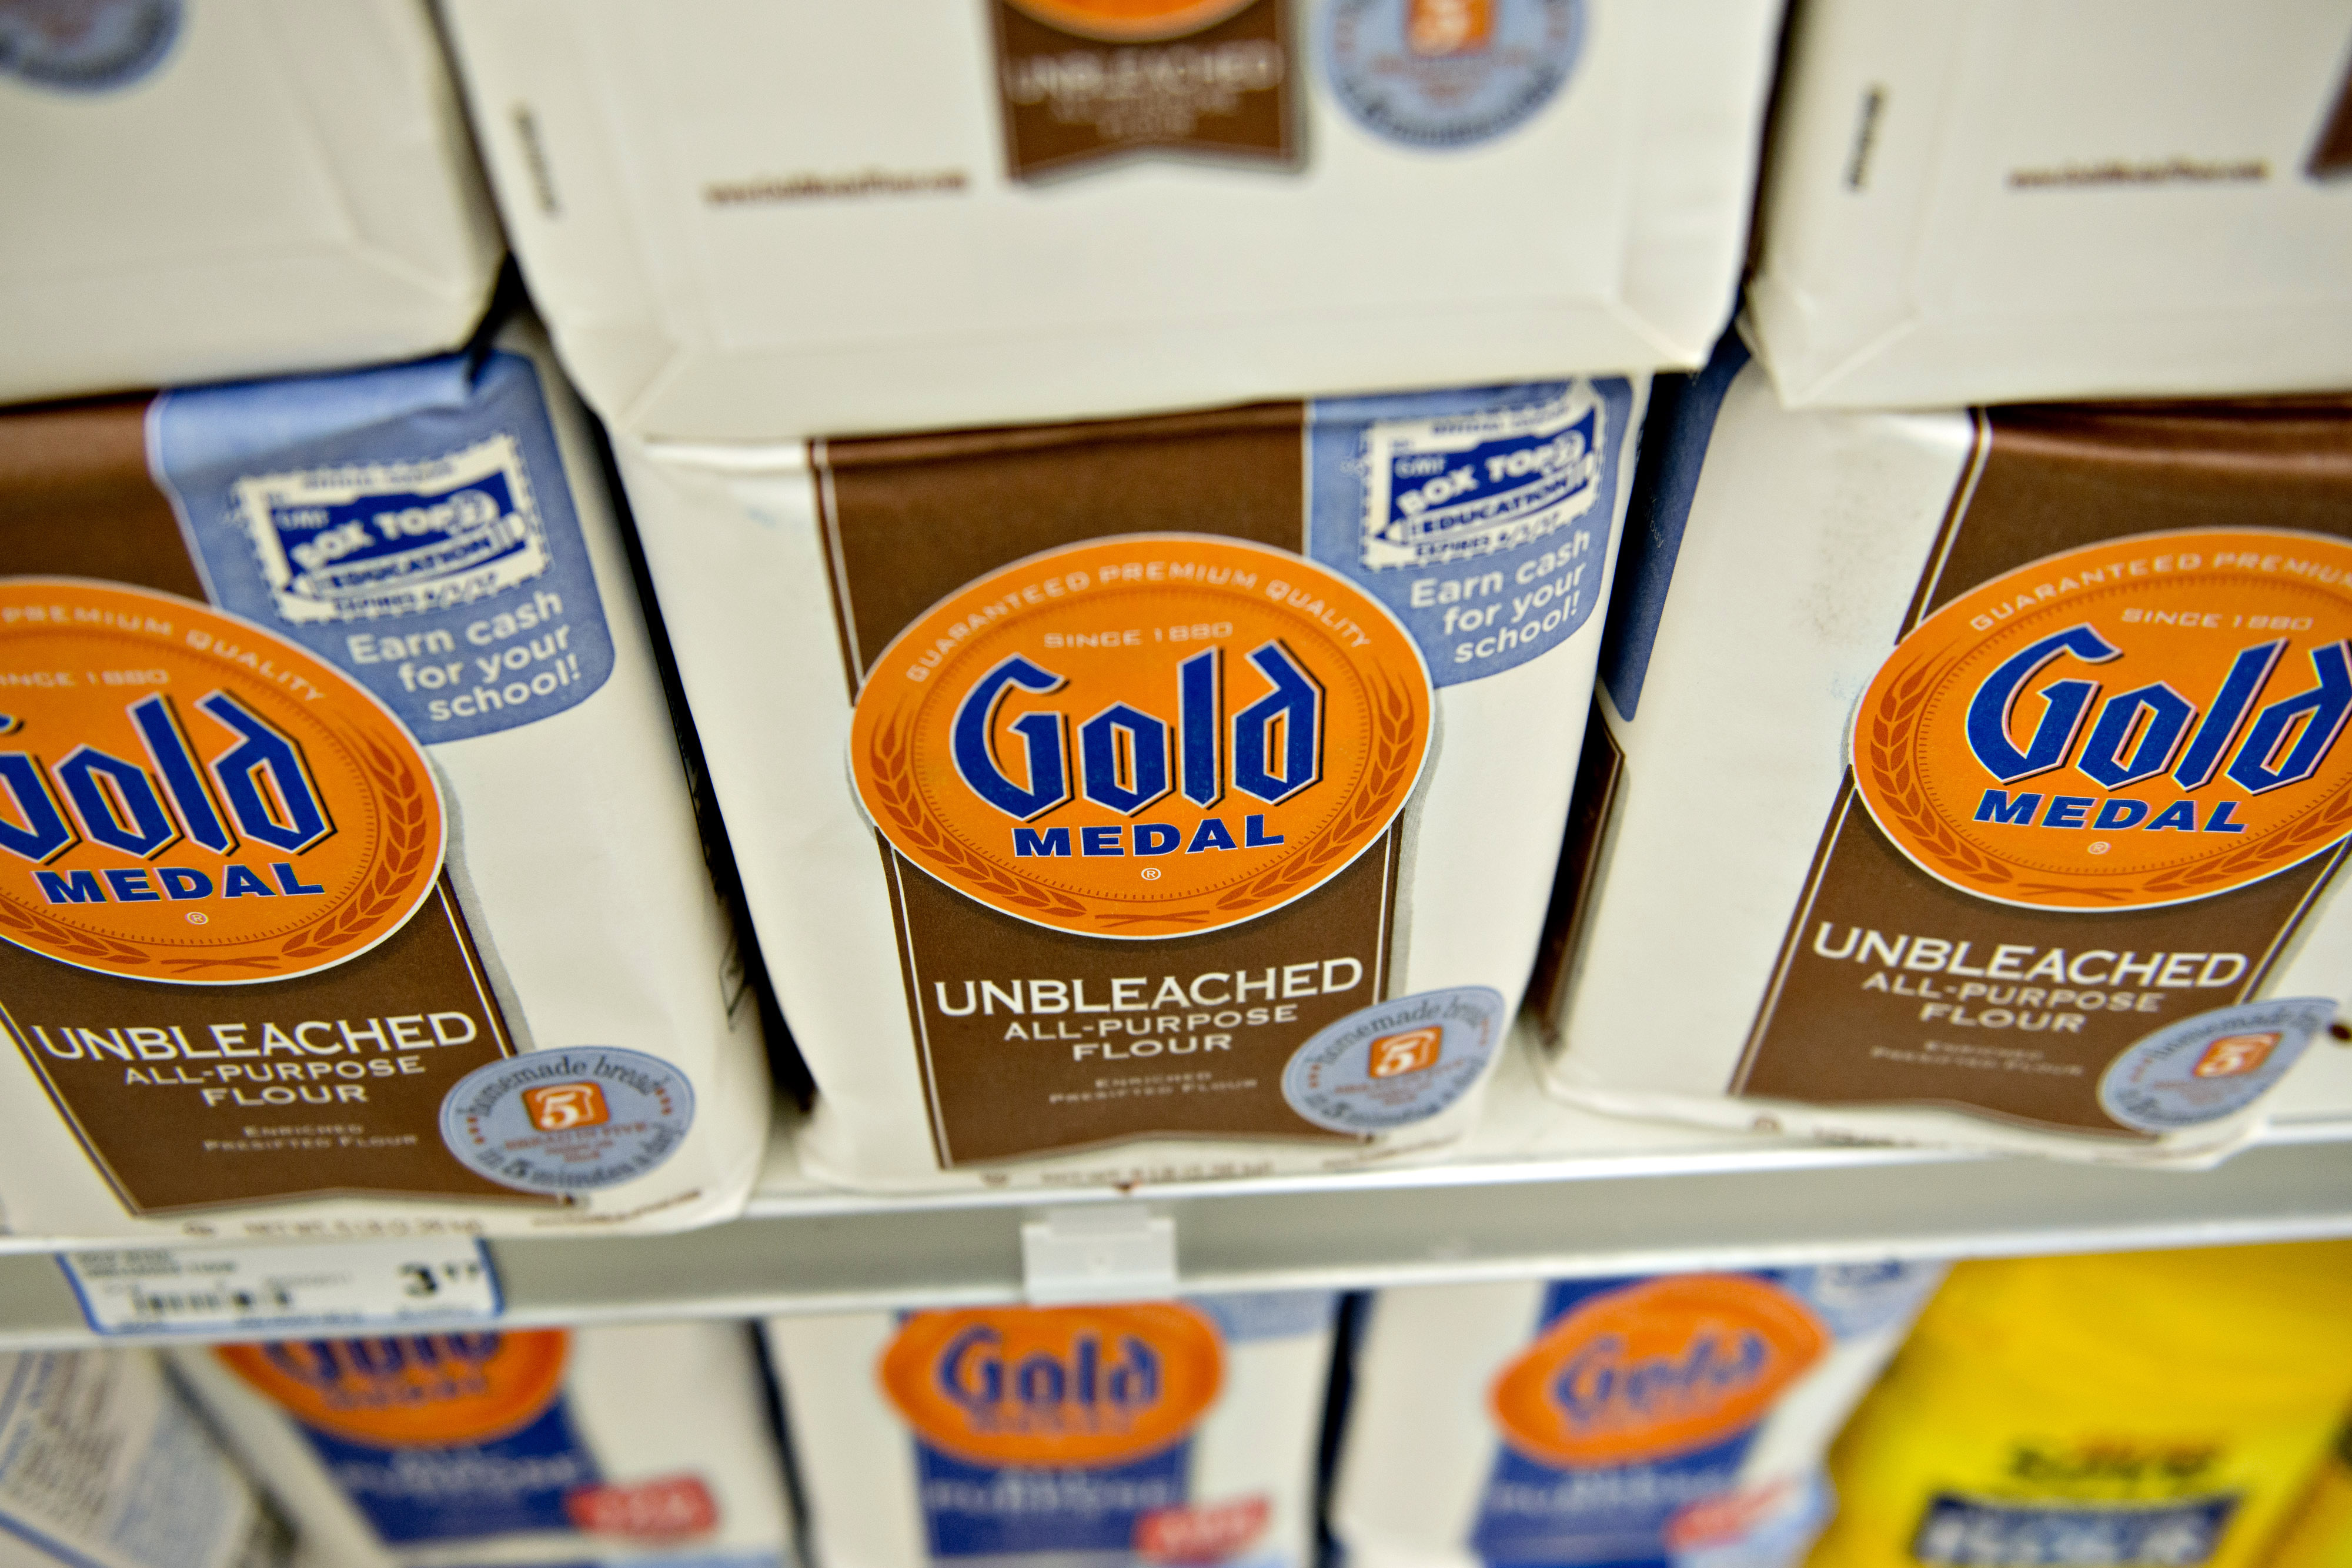 General Mills Inc. Gold Medal flour in Princeton, Ill. on Sept. 17, 2013.